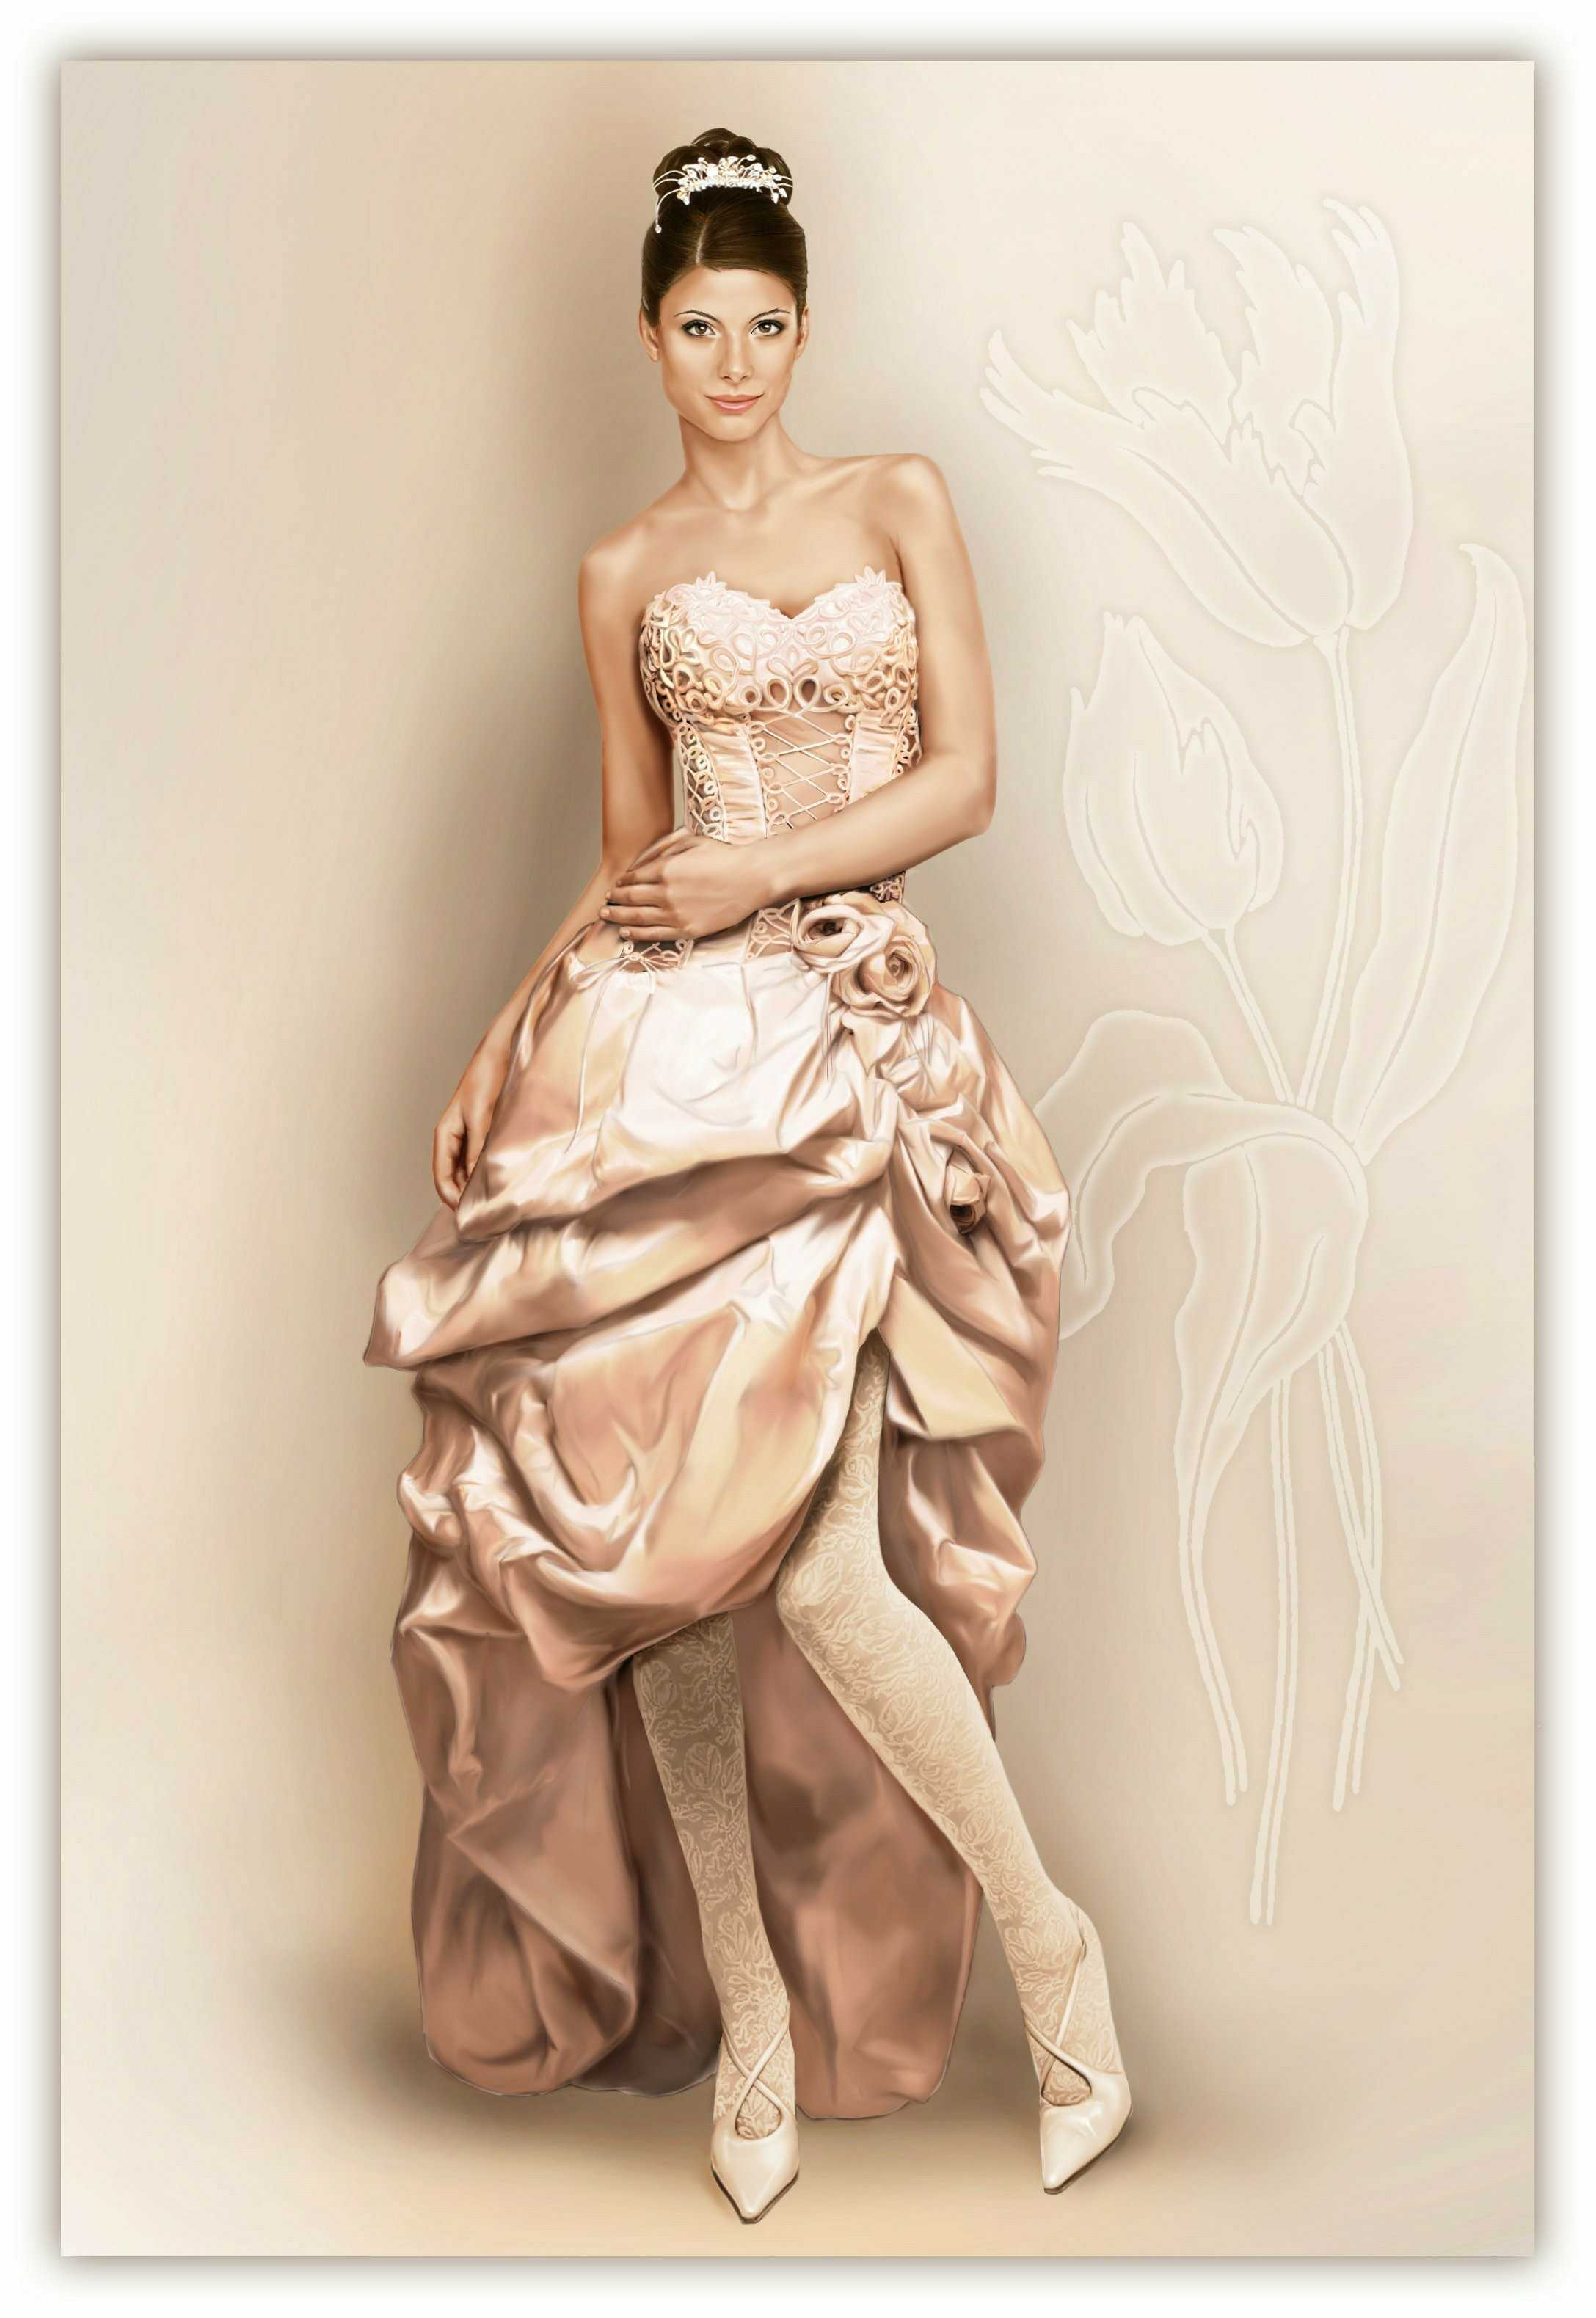 Wedding Dress With Balloon Skirt And Lace Decoration With Cords